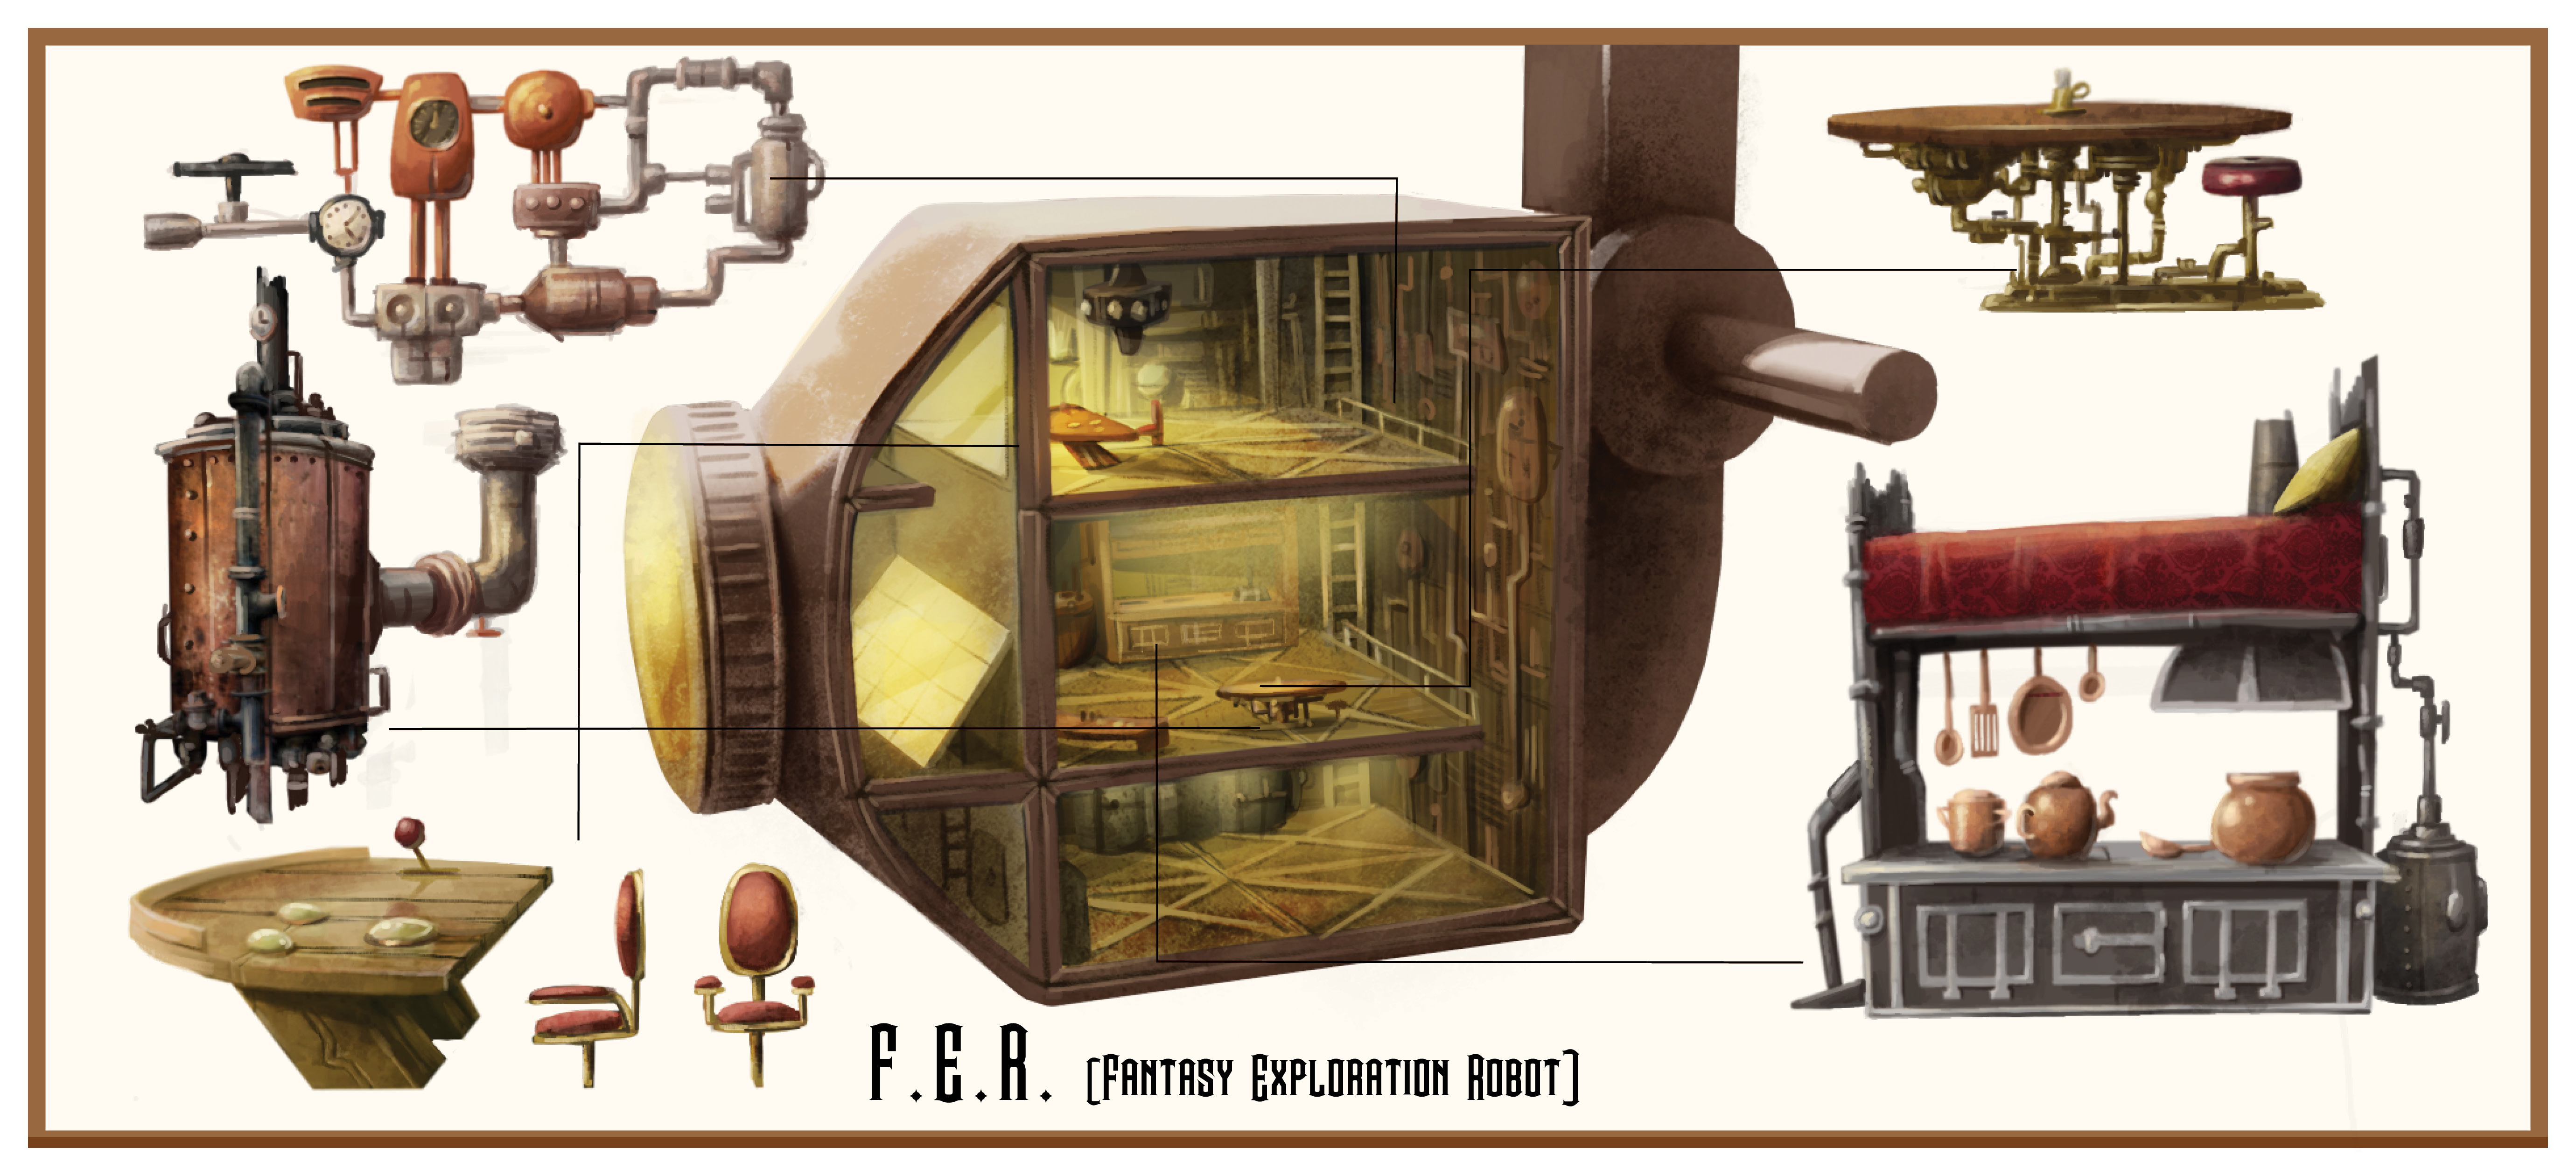 F.E.R. (Fantasy Exploration Robot)